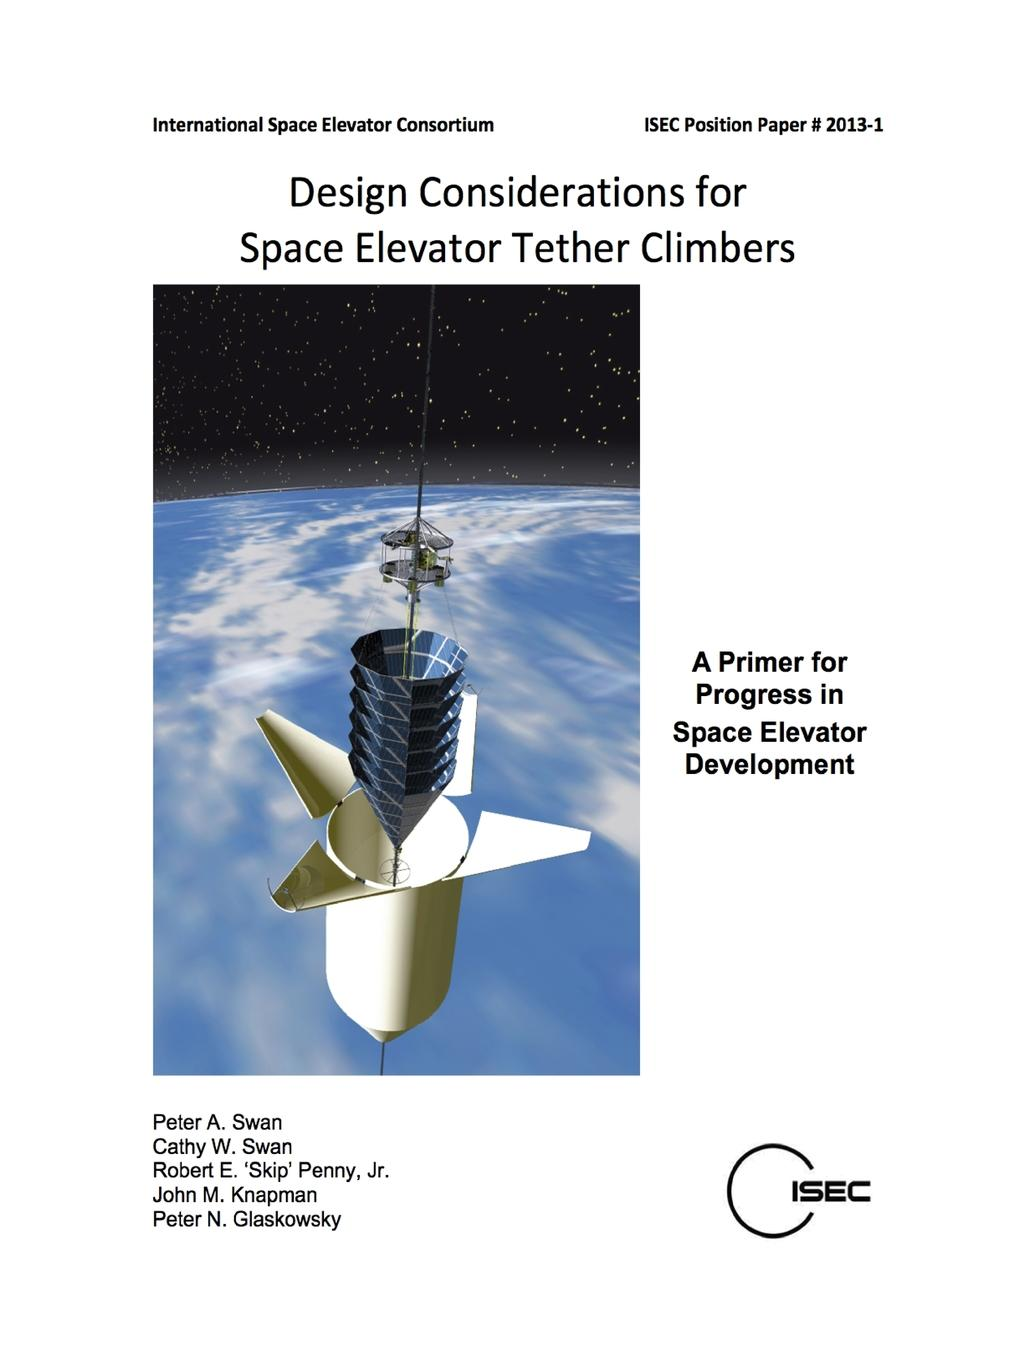 Design Considerations for Space Elevator Tether Climbers